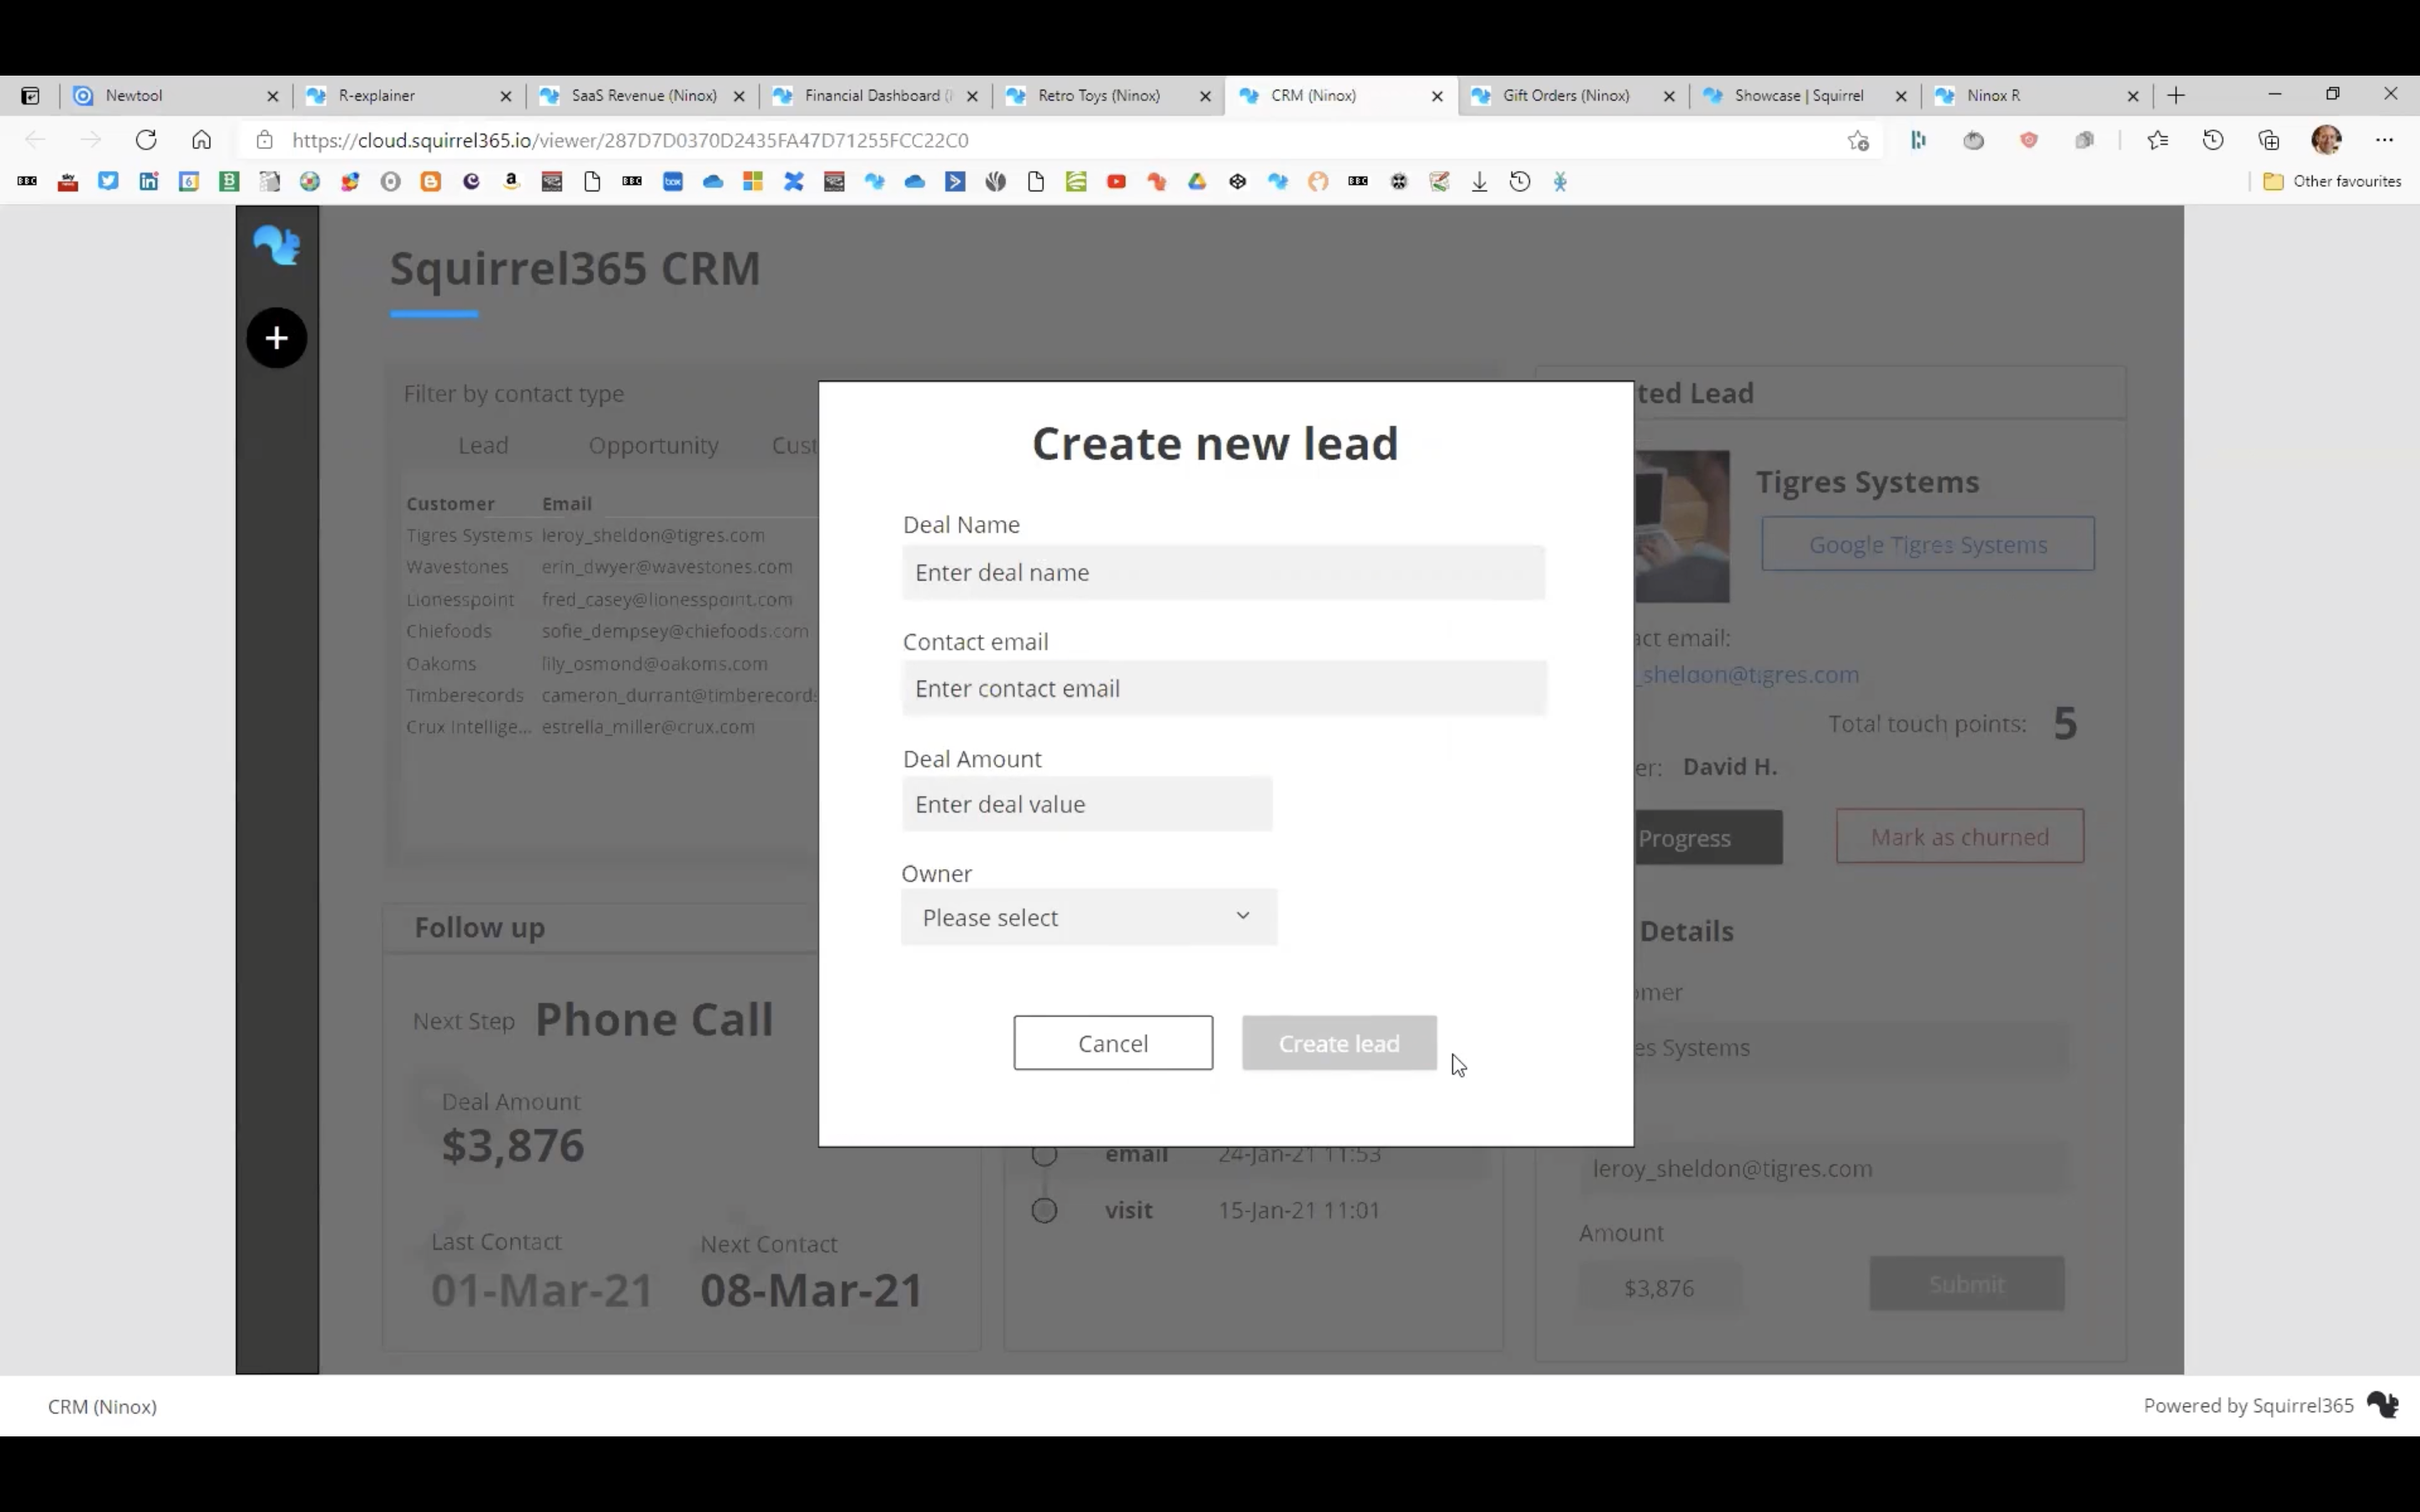 Creating a New Lead in Squirrel365 CRM project